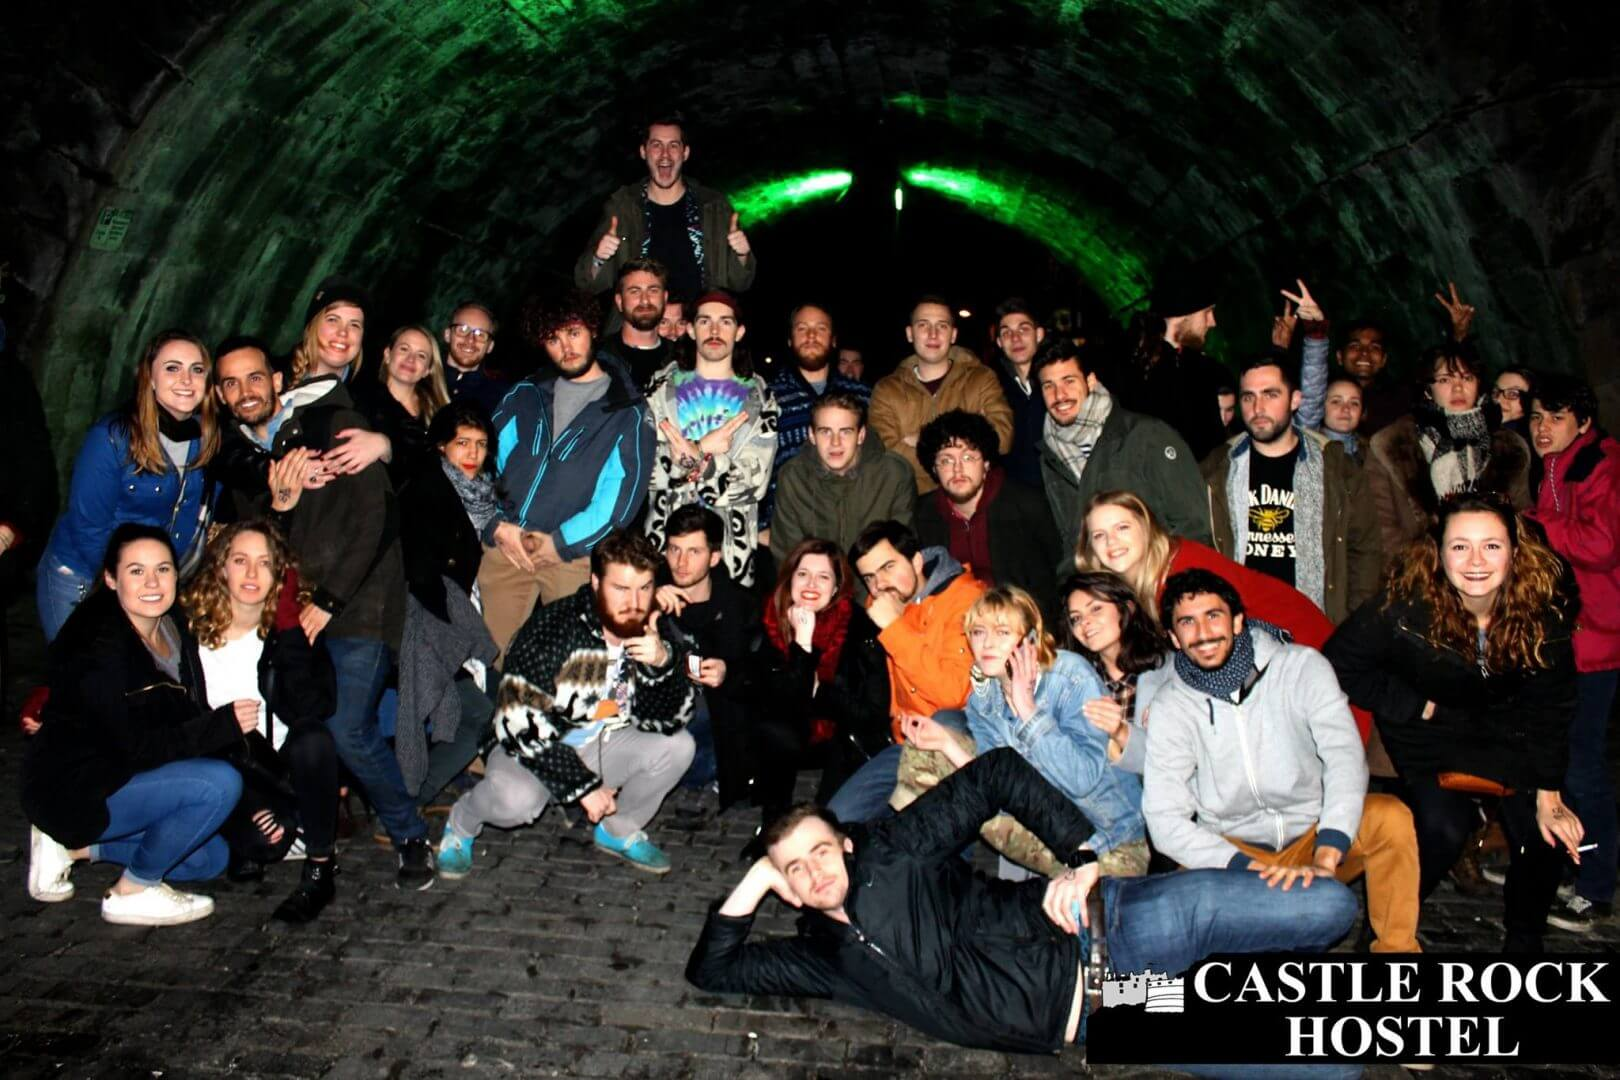 pub crawl at castle rock hostel